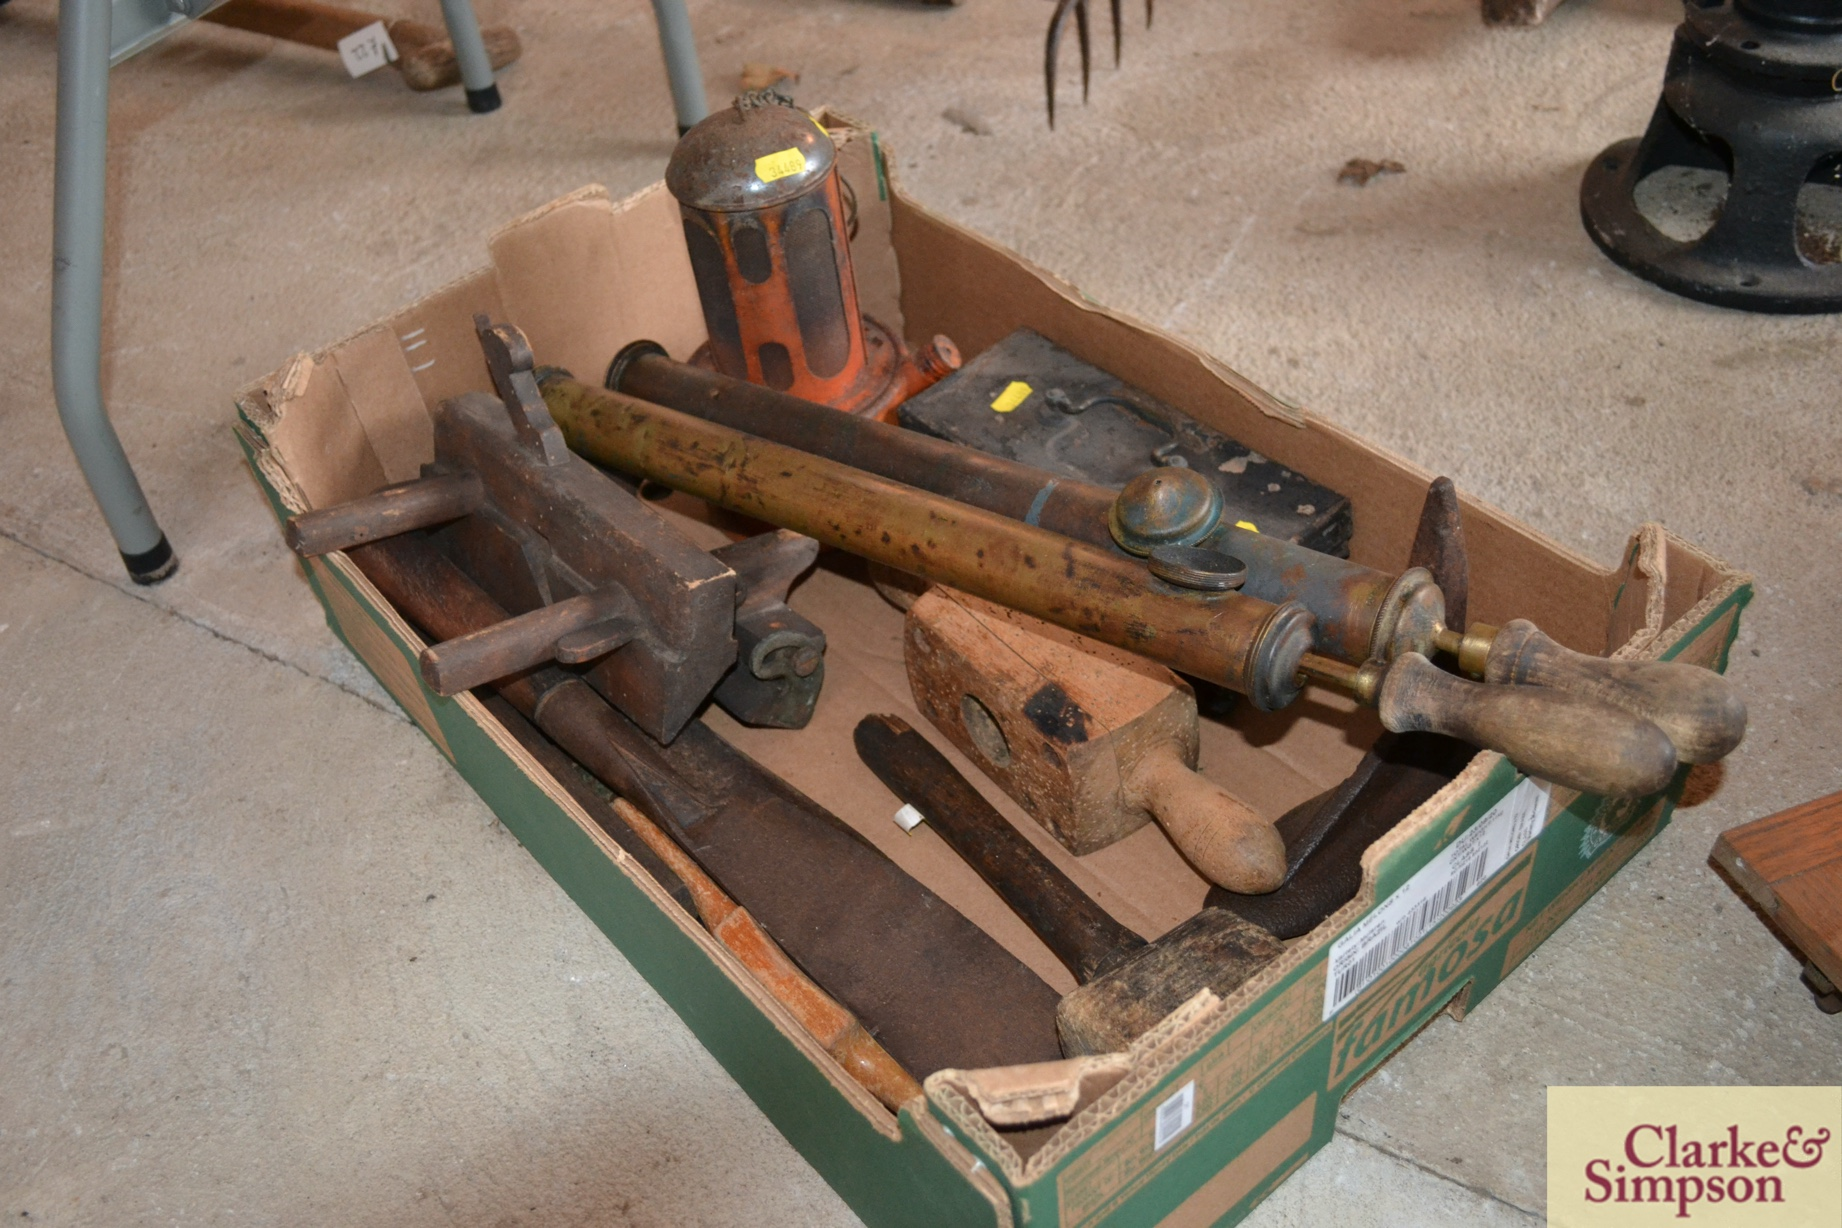 Two vintage brass garden sprayers, a cast iron last, - Image 2 of 3